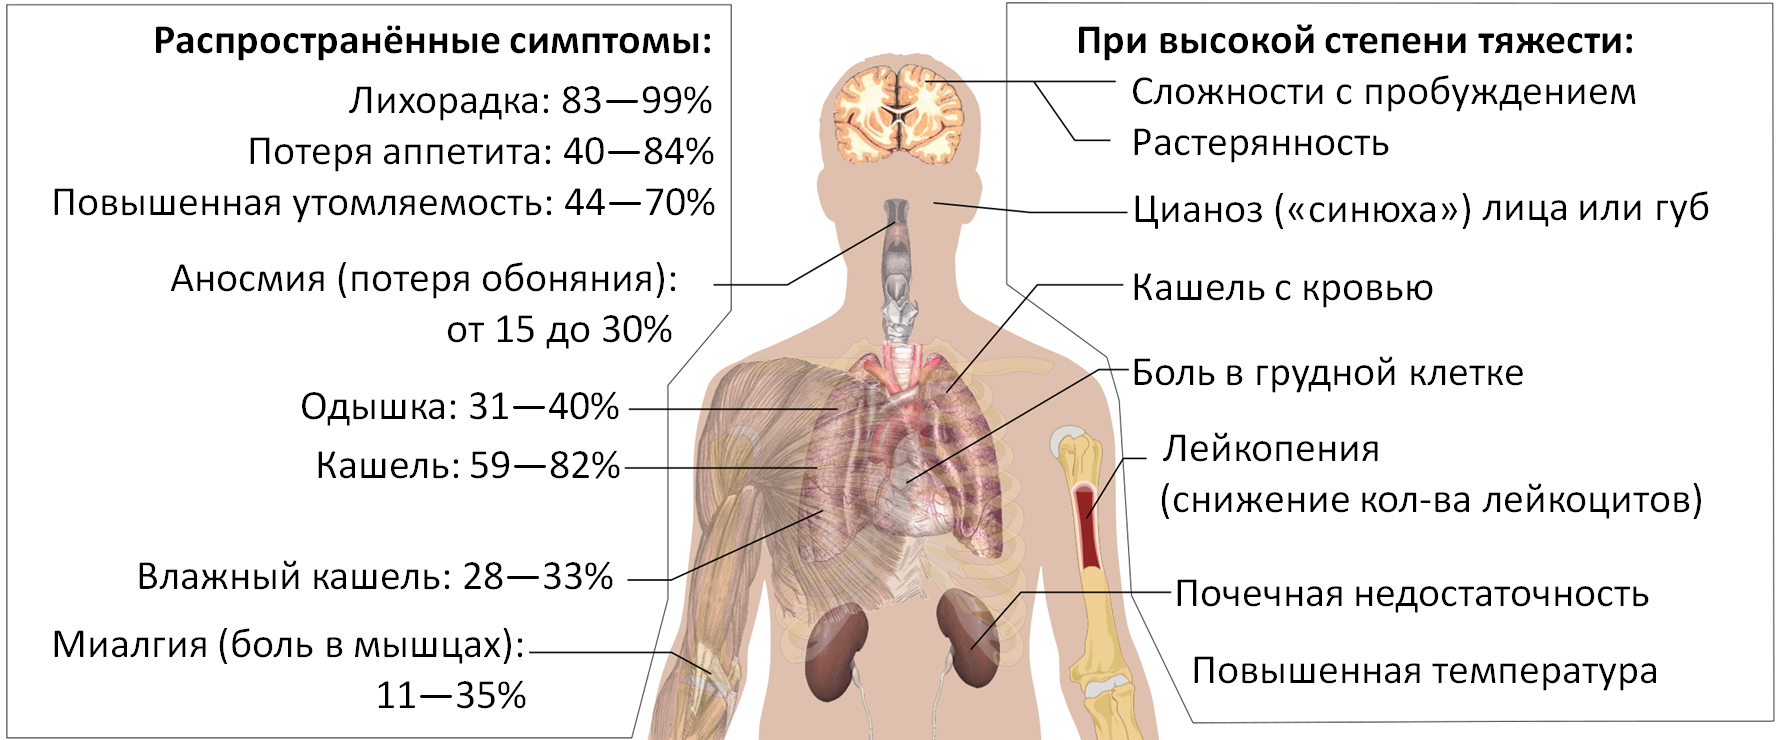 Symptoms of coronavirus disease 2019 4.0 ru